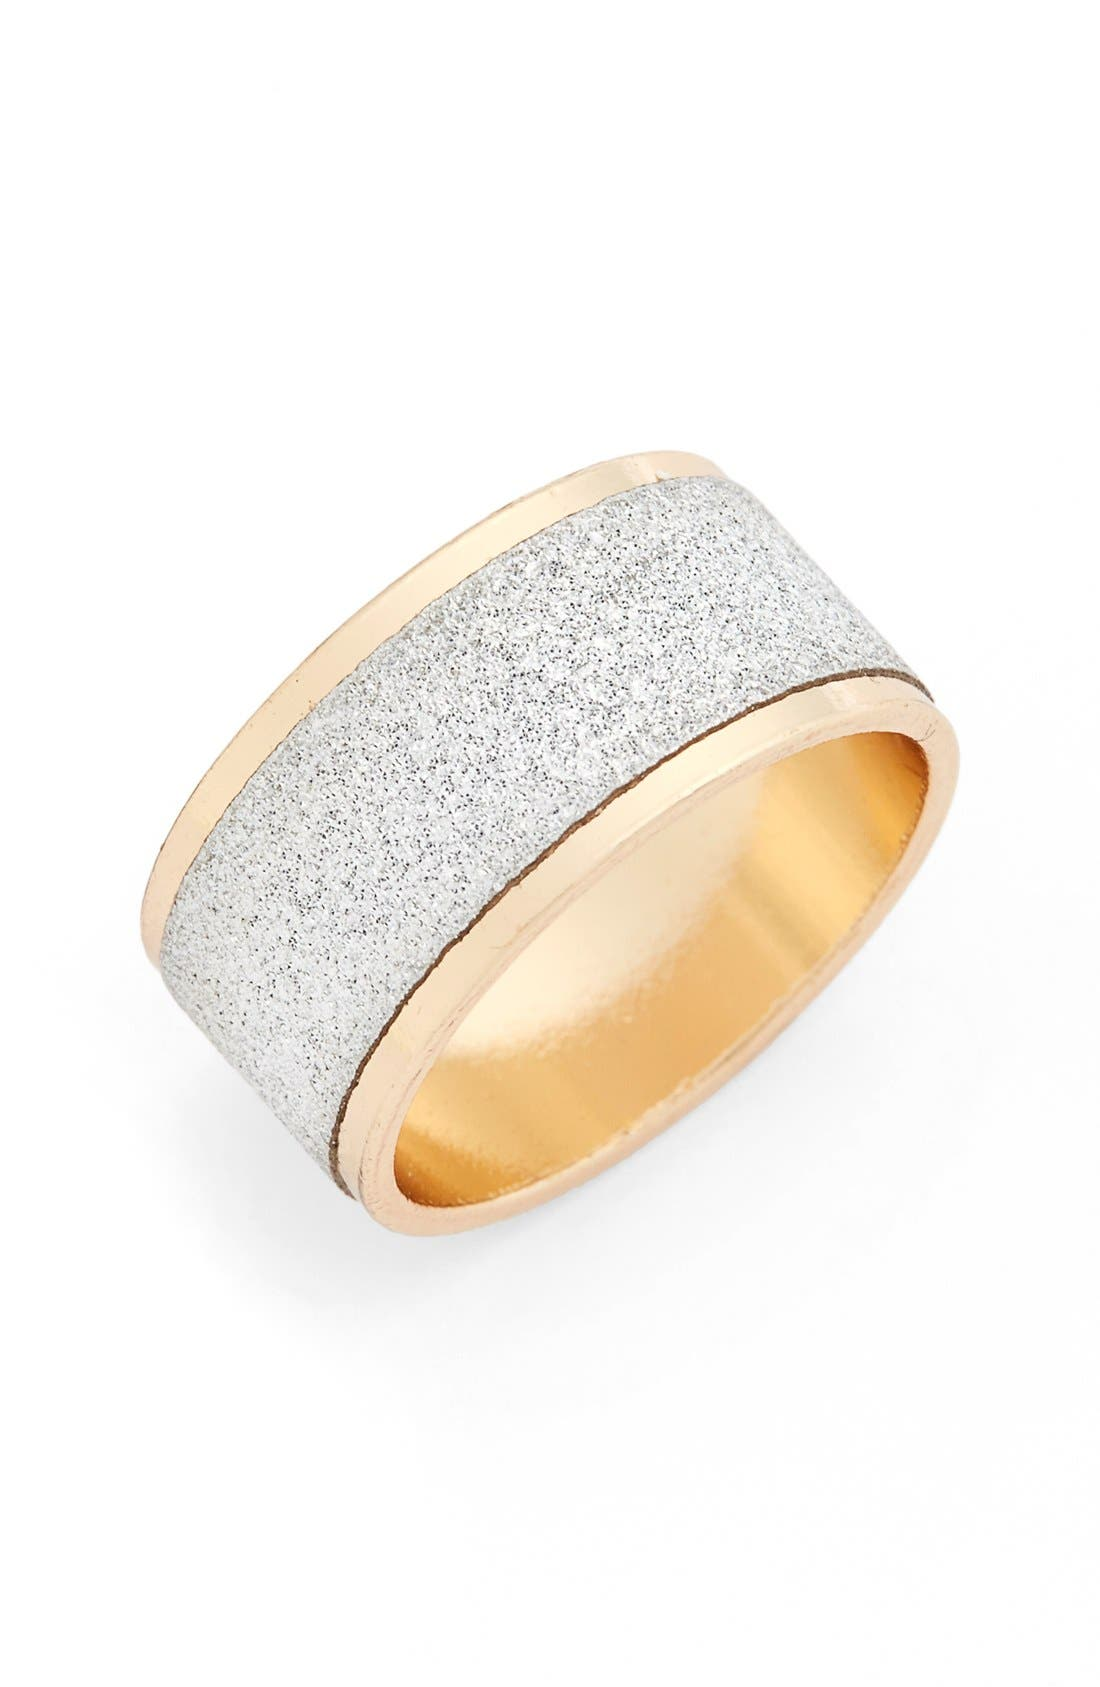 Alternate Image 1 Selected - Topshop Silver & Gold Glitter Ring